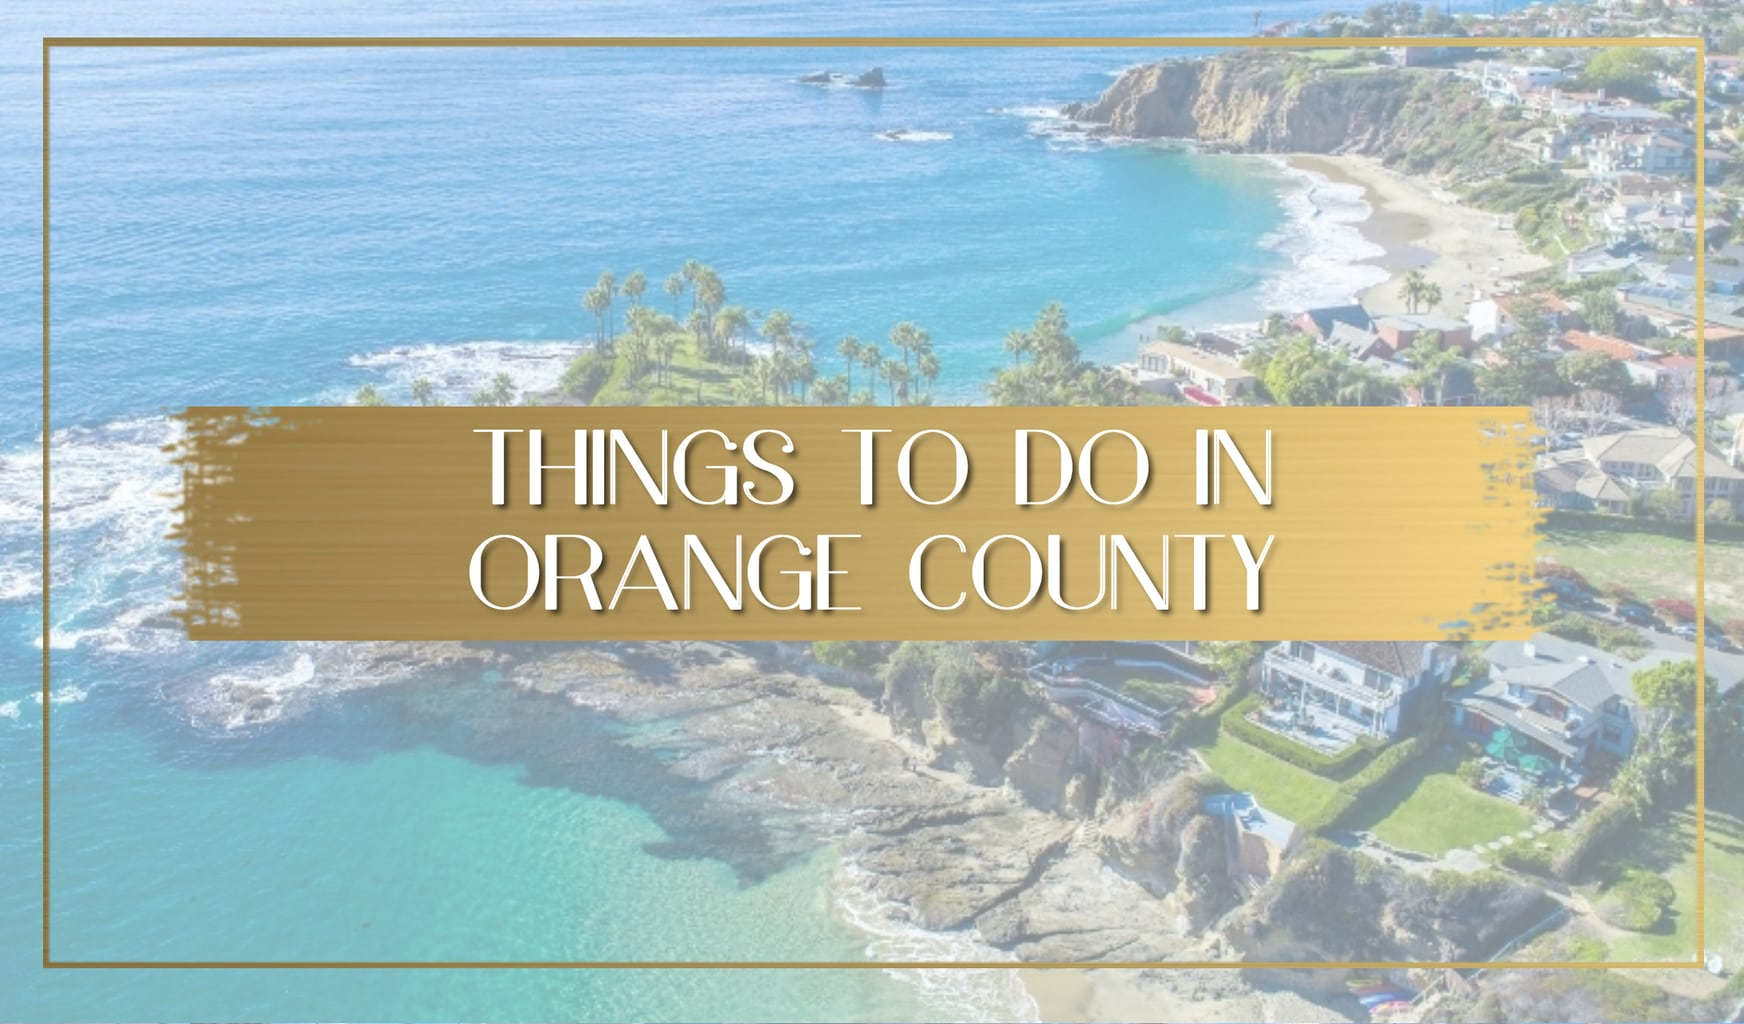 Things to do in Orange County main